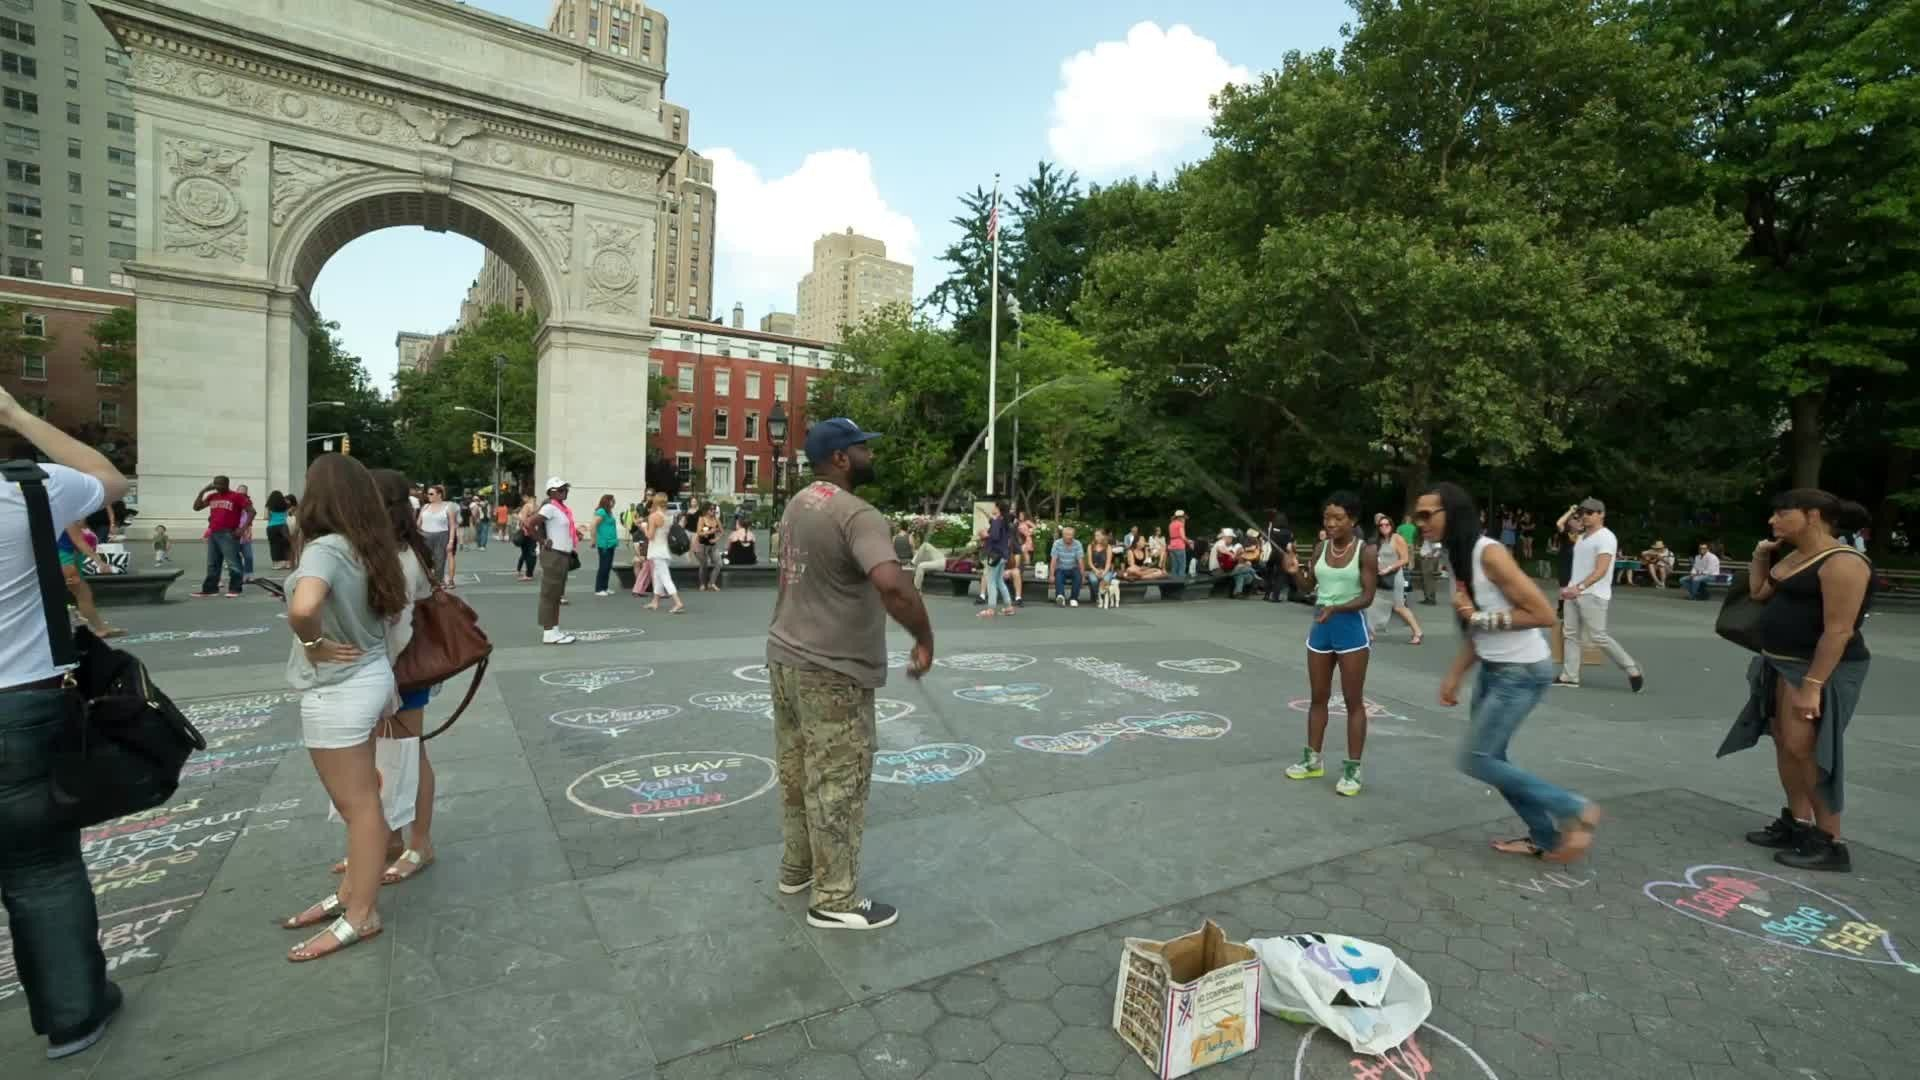 trans woman playing Double-Dutch in Washington Square Park on summer day in NYC